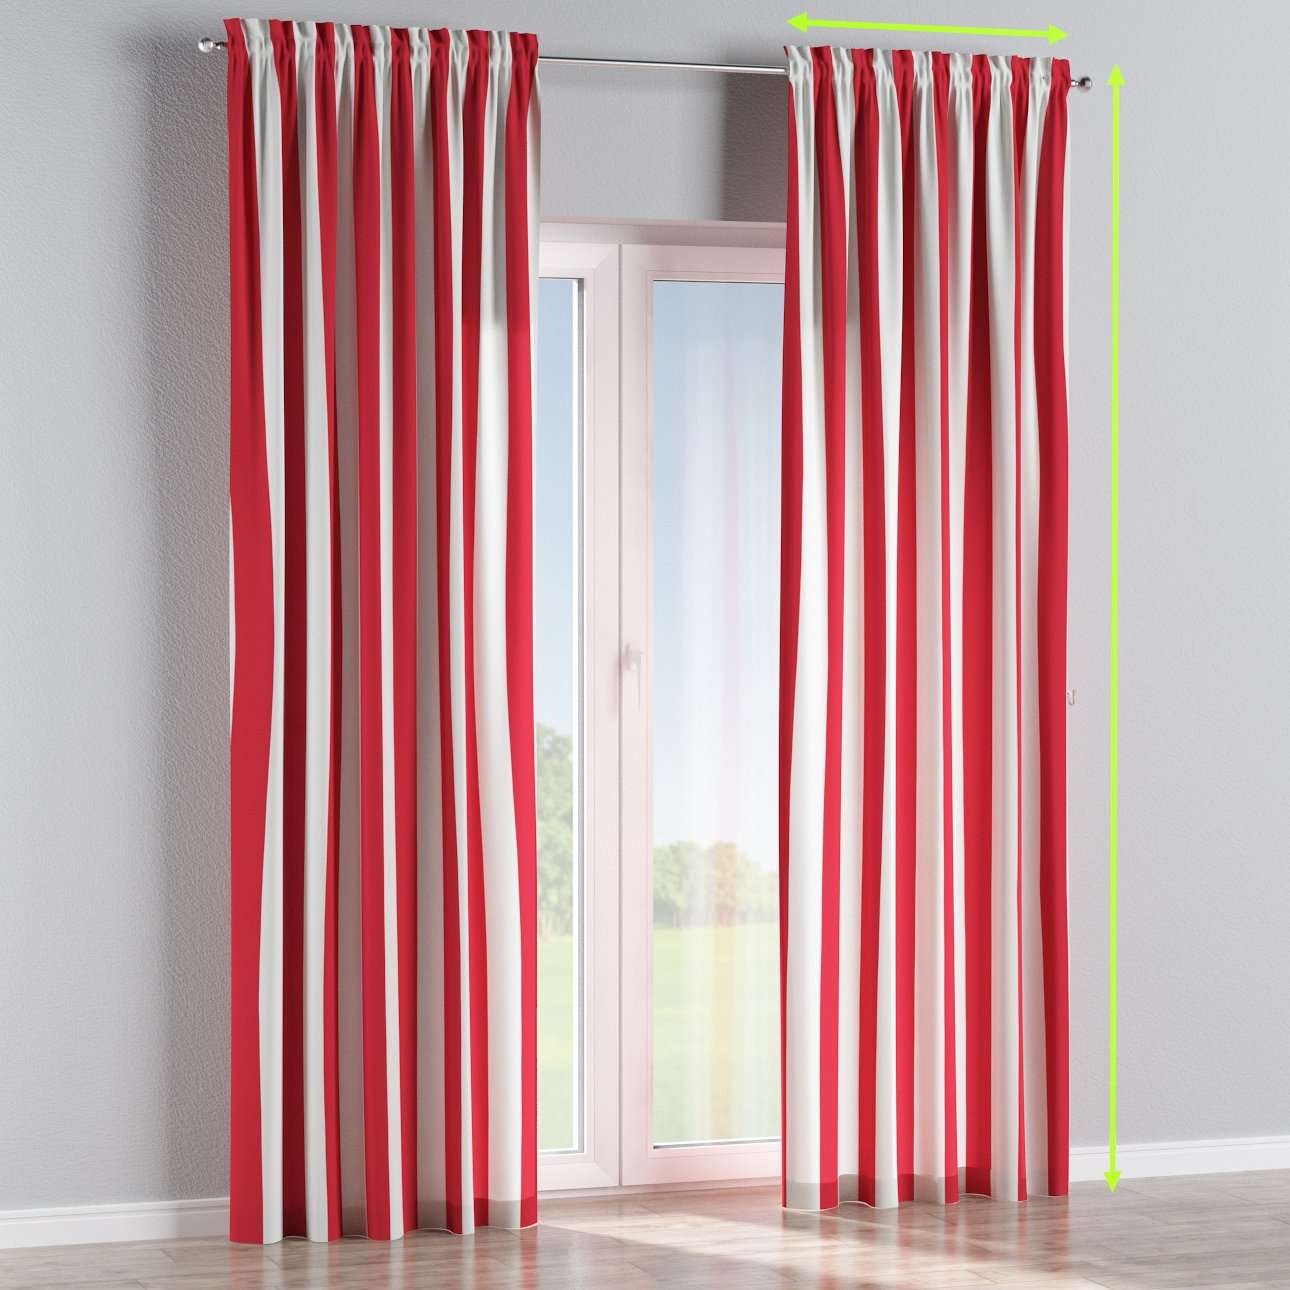 Slot and frill lined curtains in collection Comic Book & Geo Prints, fabric: 137-54